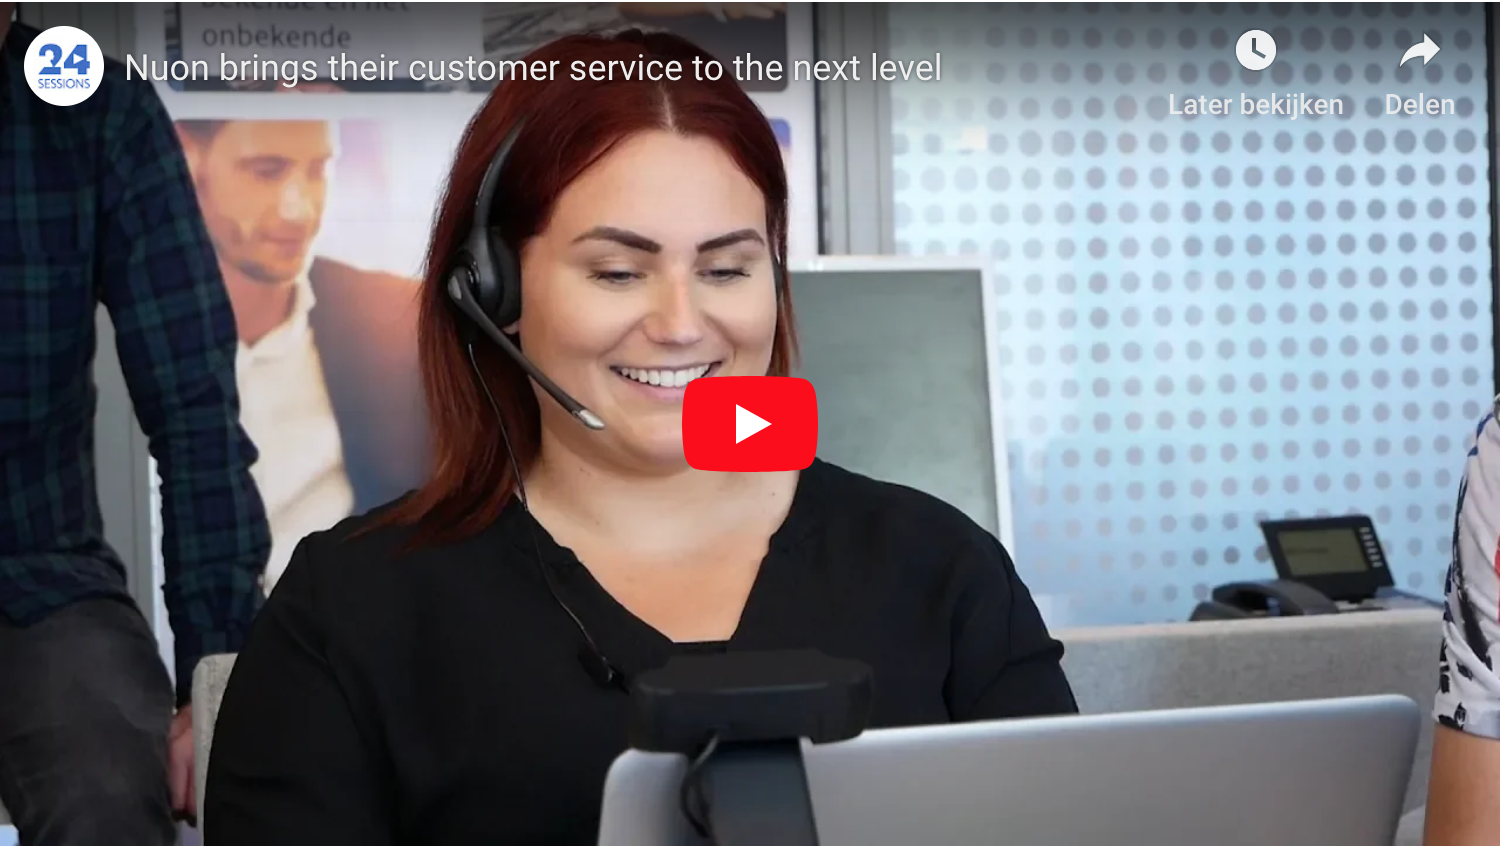 Nuon brings their customer service to the next level